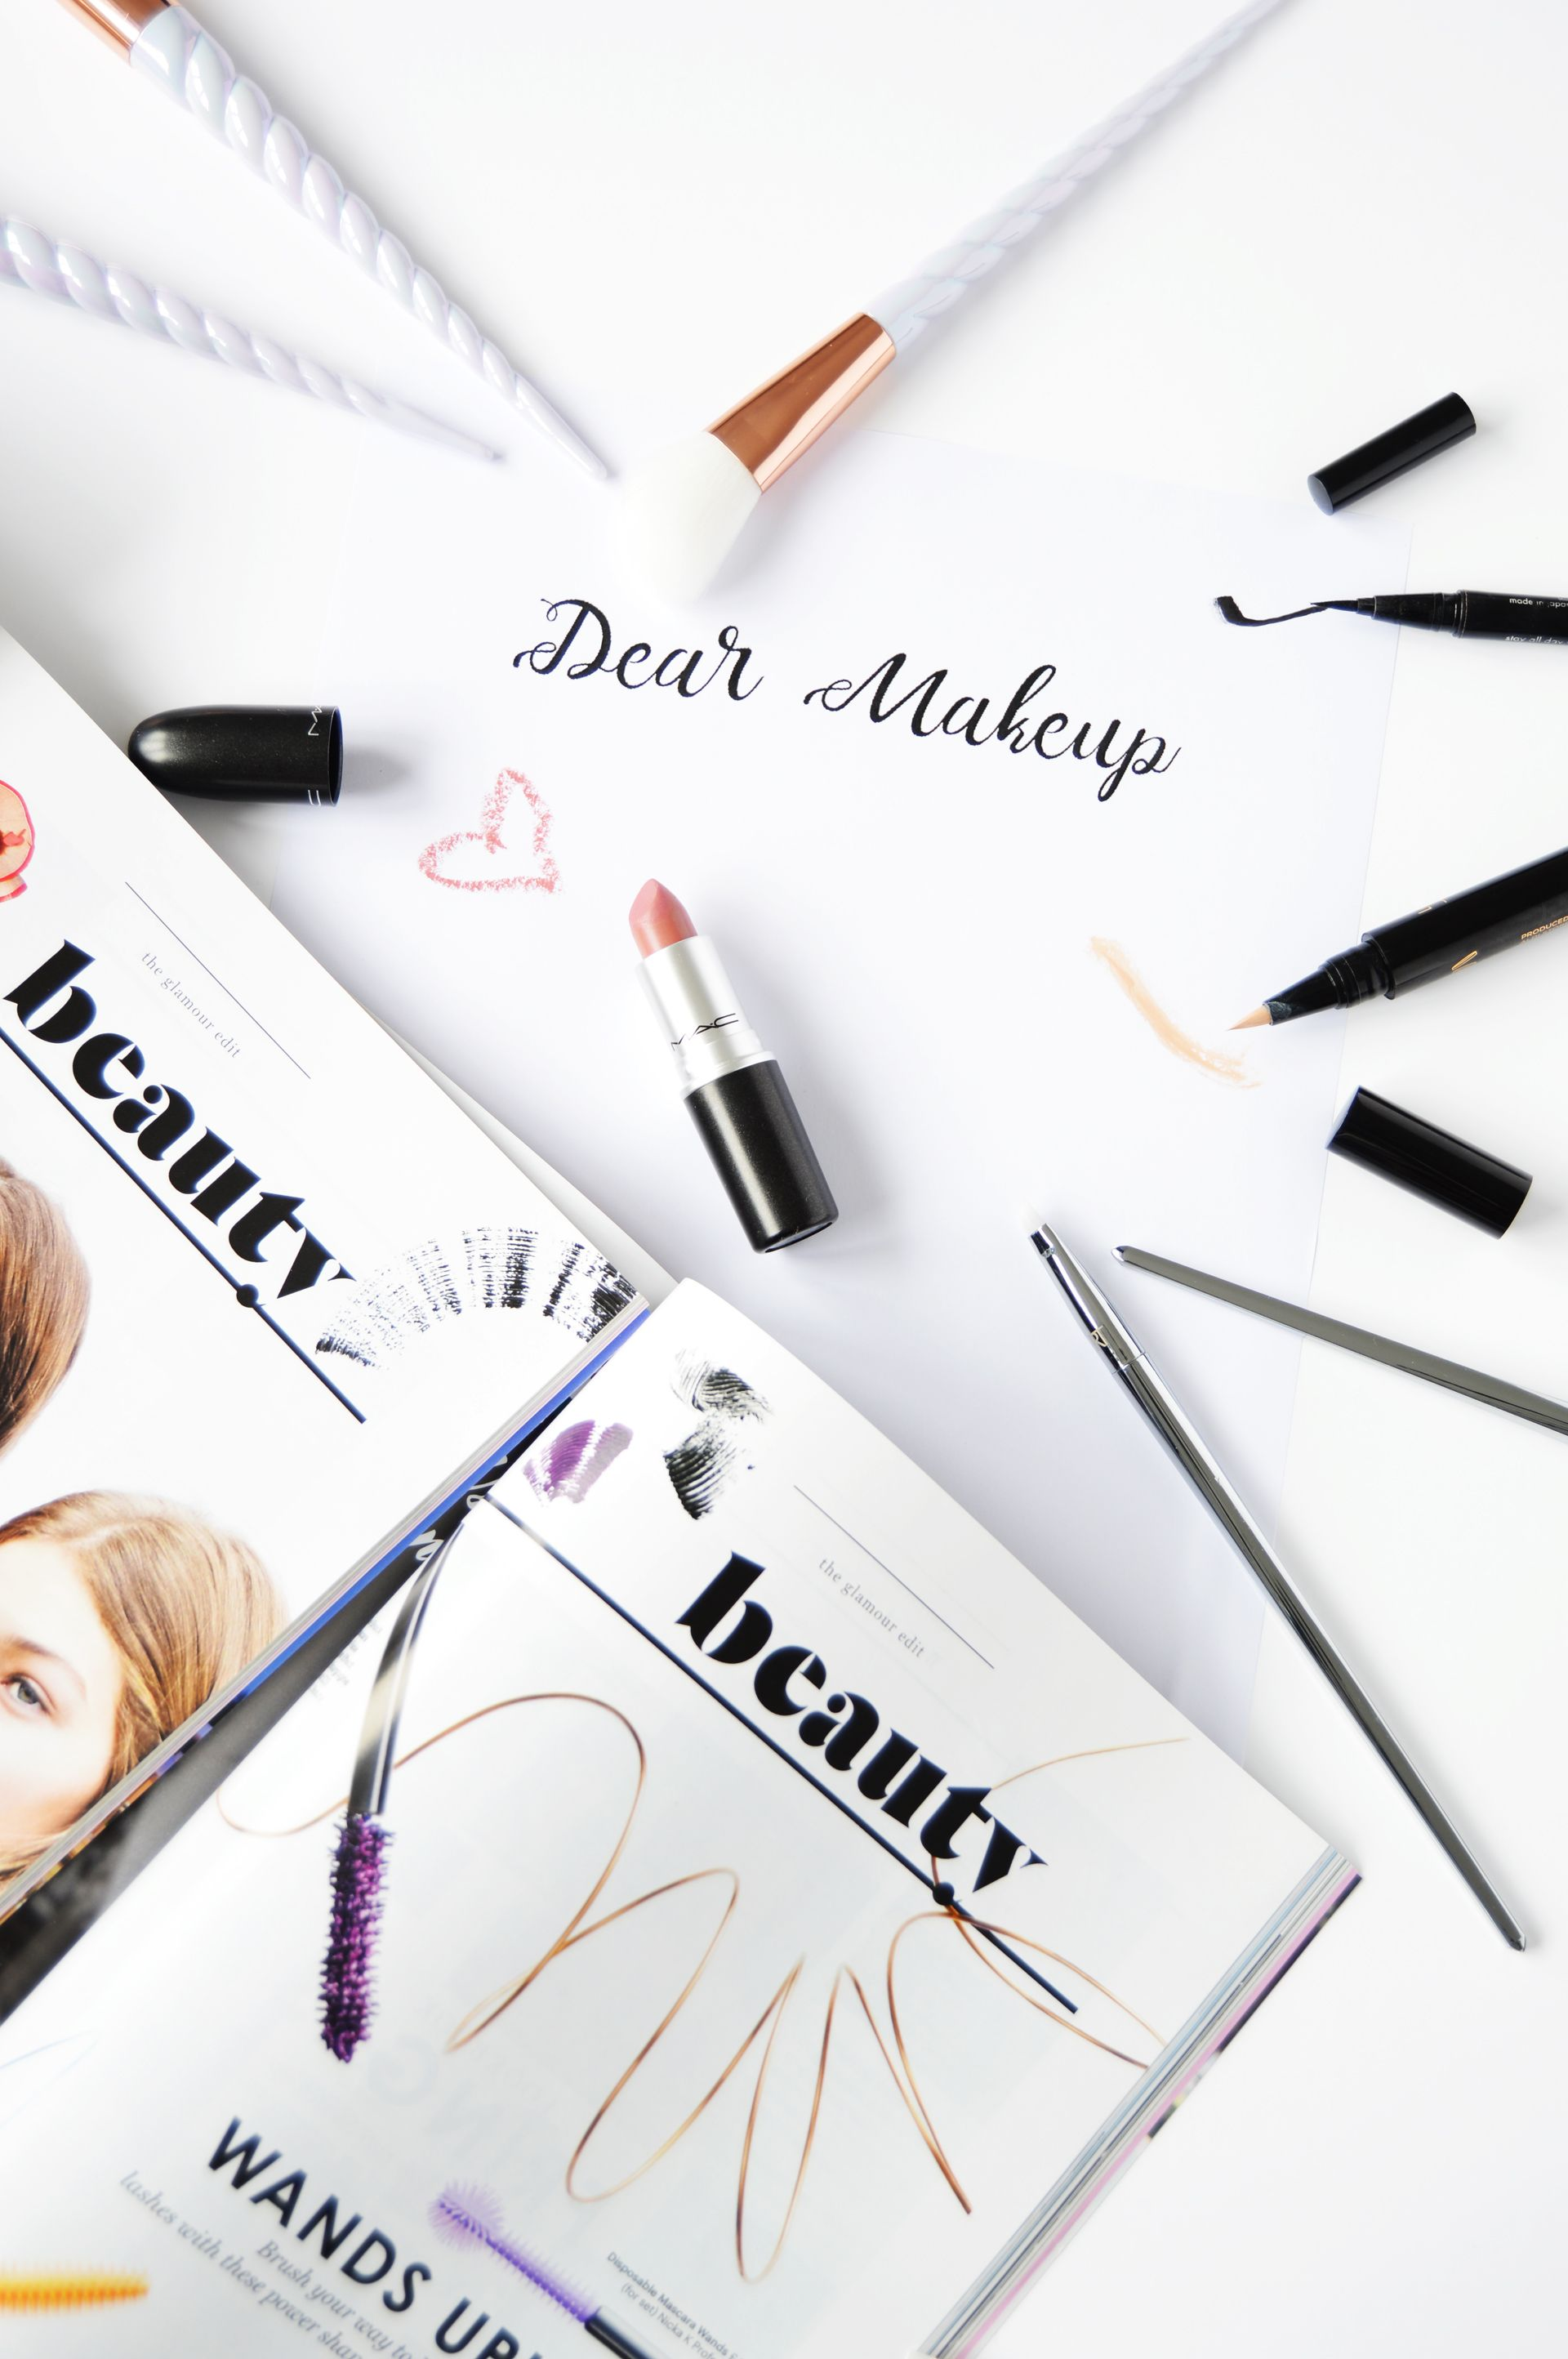 Do you remember when was the first time you fell in love with makeup? Was it as you were watching your mum putting her makeup on? Let's Talk First Makeup Love and share our stories!